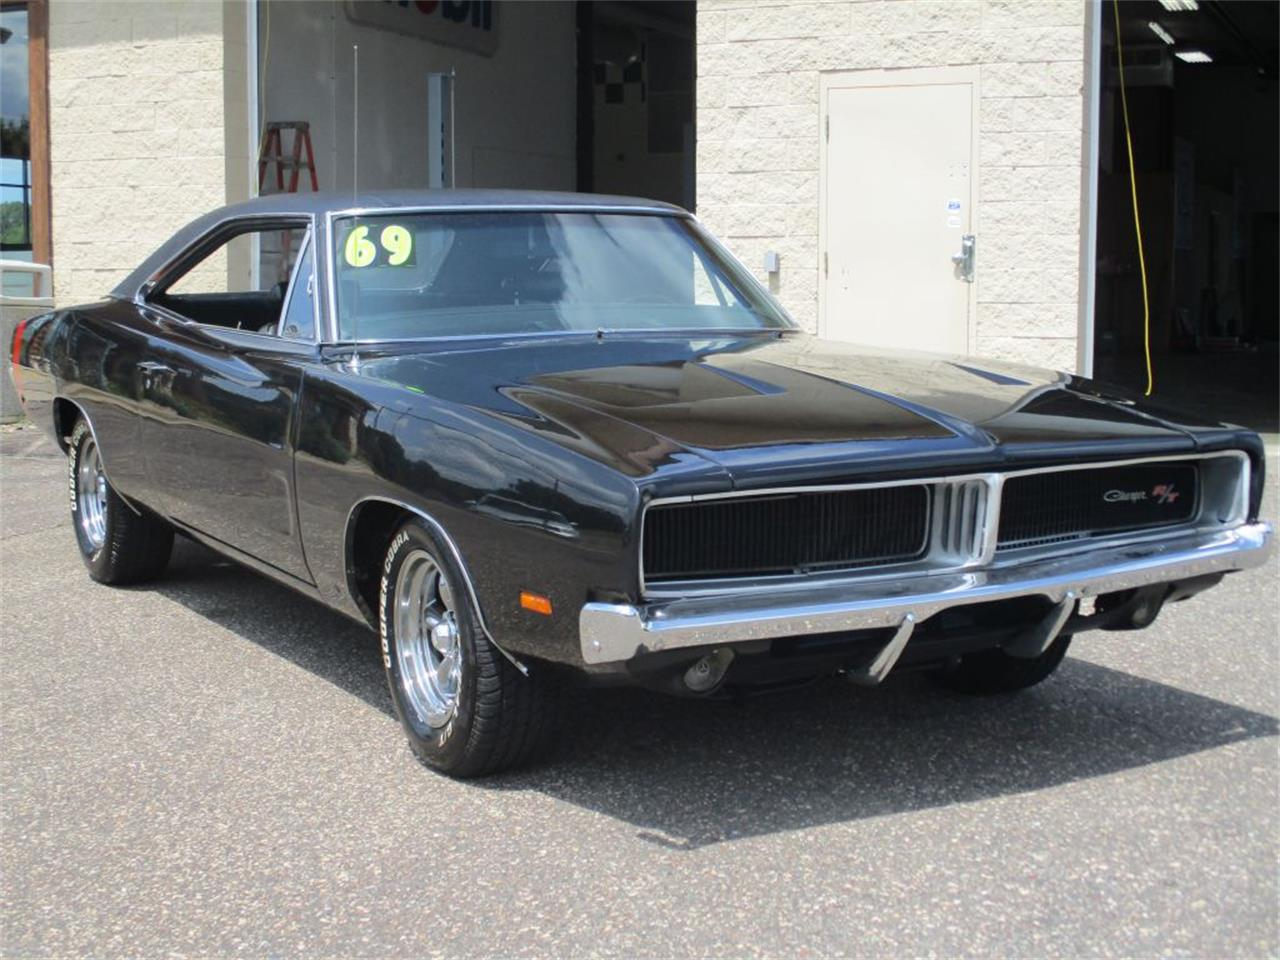 Dodge Charger Rt For Sale >> 1969 Dodge Charger R T For Sale Classiccars Com Cc 1128055